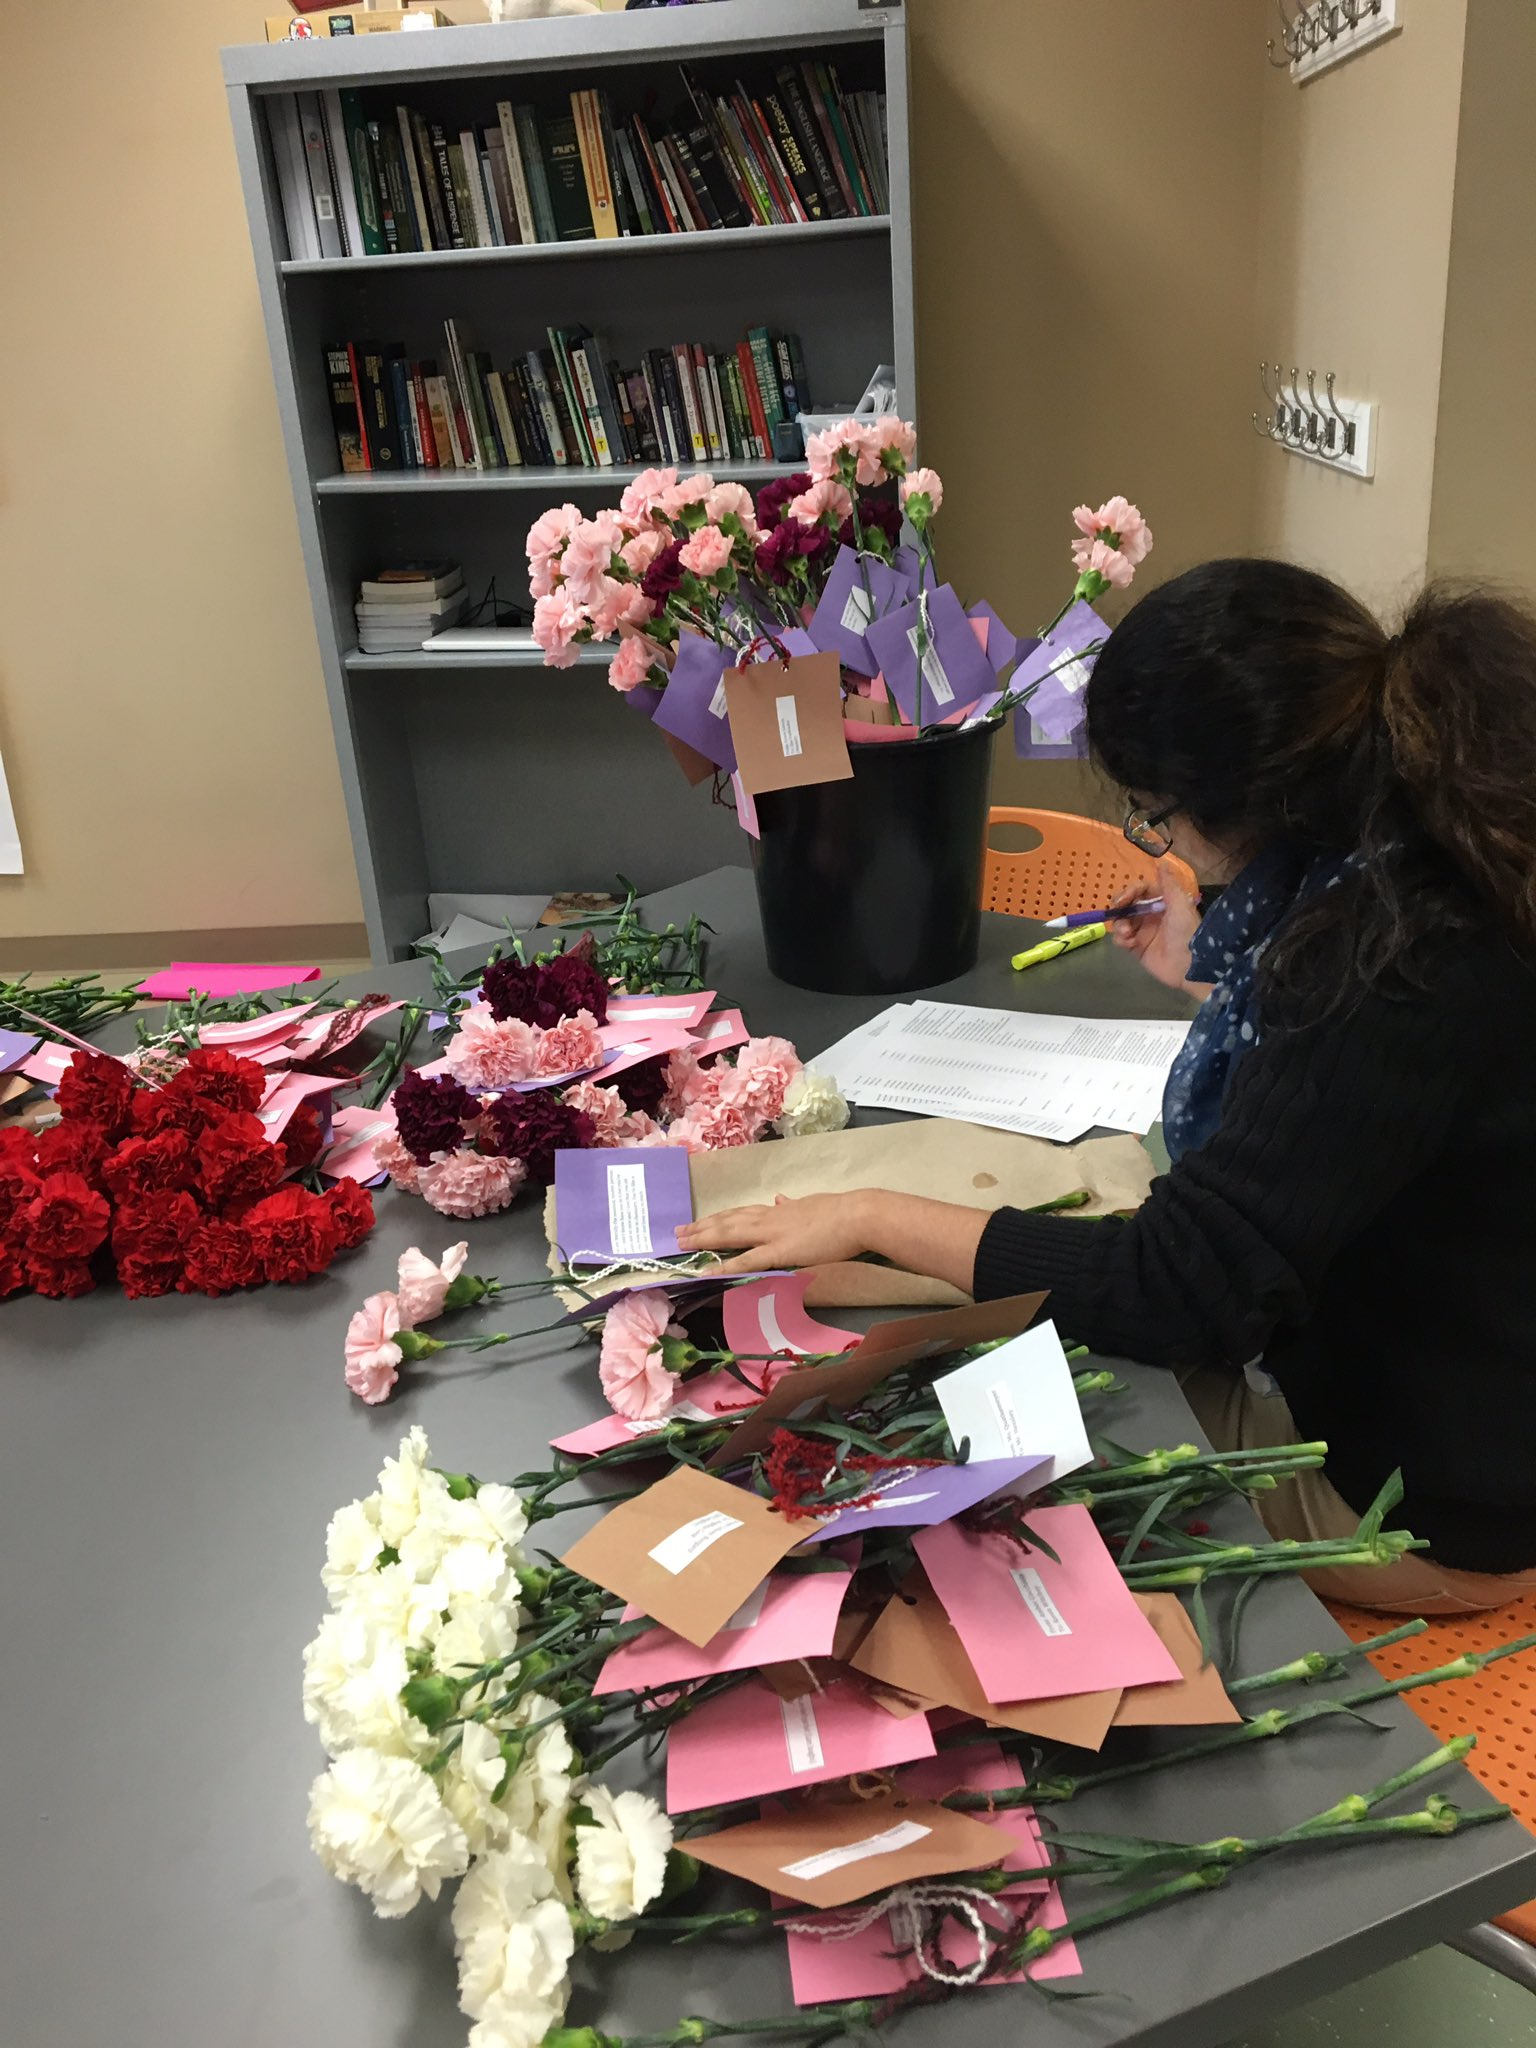 Diversity club @MrMaxMonegan prepping for our Valentine's Day deliveries #ourBMSA https://t.co/MXNYzhIOyO